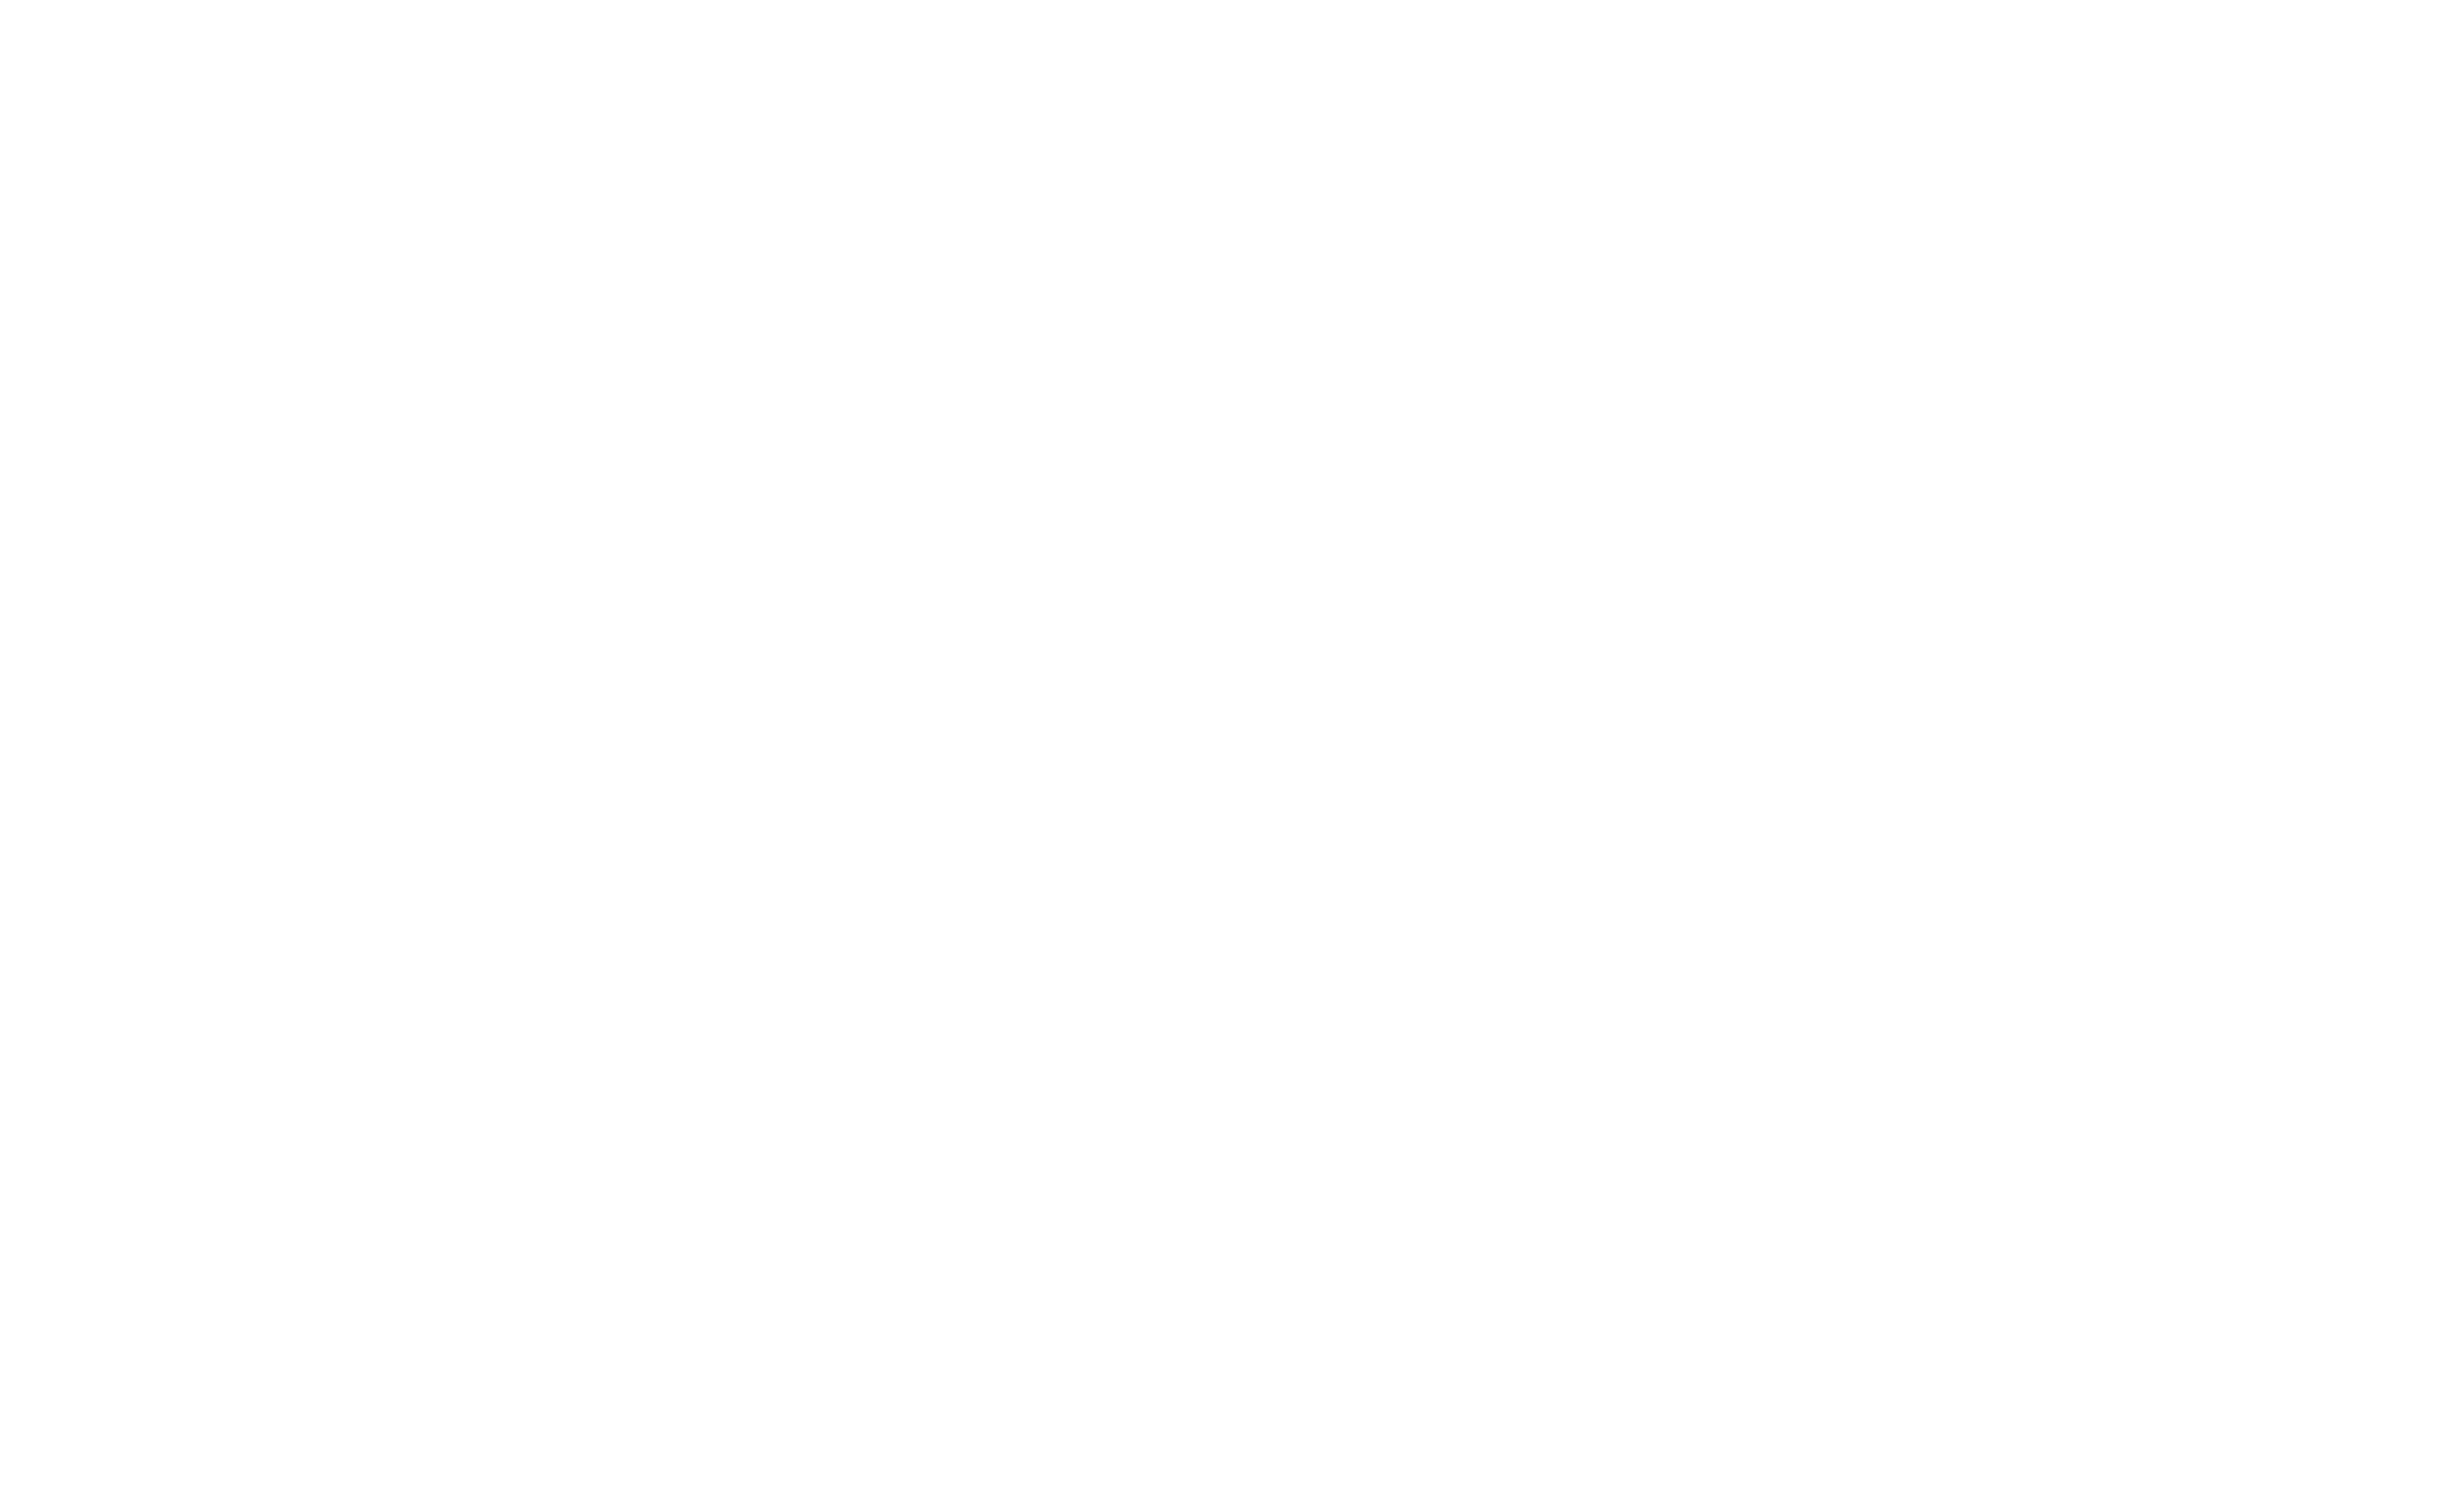 Cordova Apartment Homes. Tampa  FL Apartments for Rent in the University District   Cordova